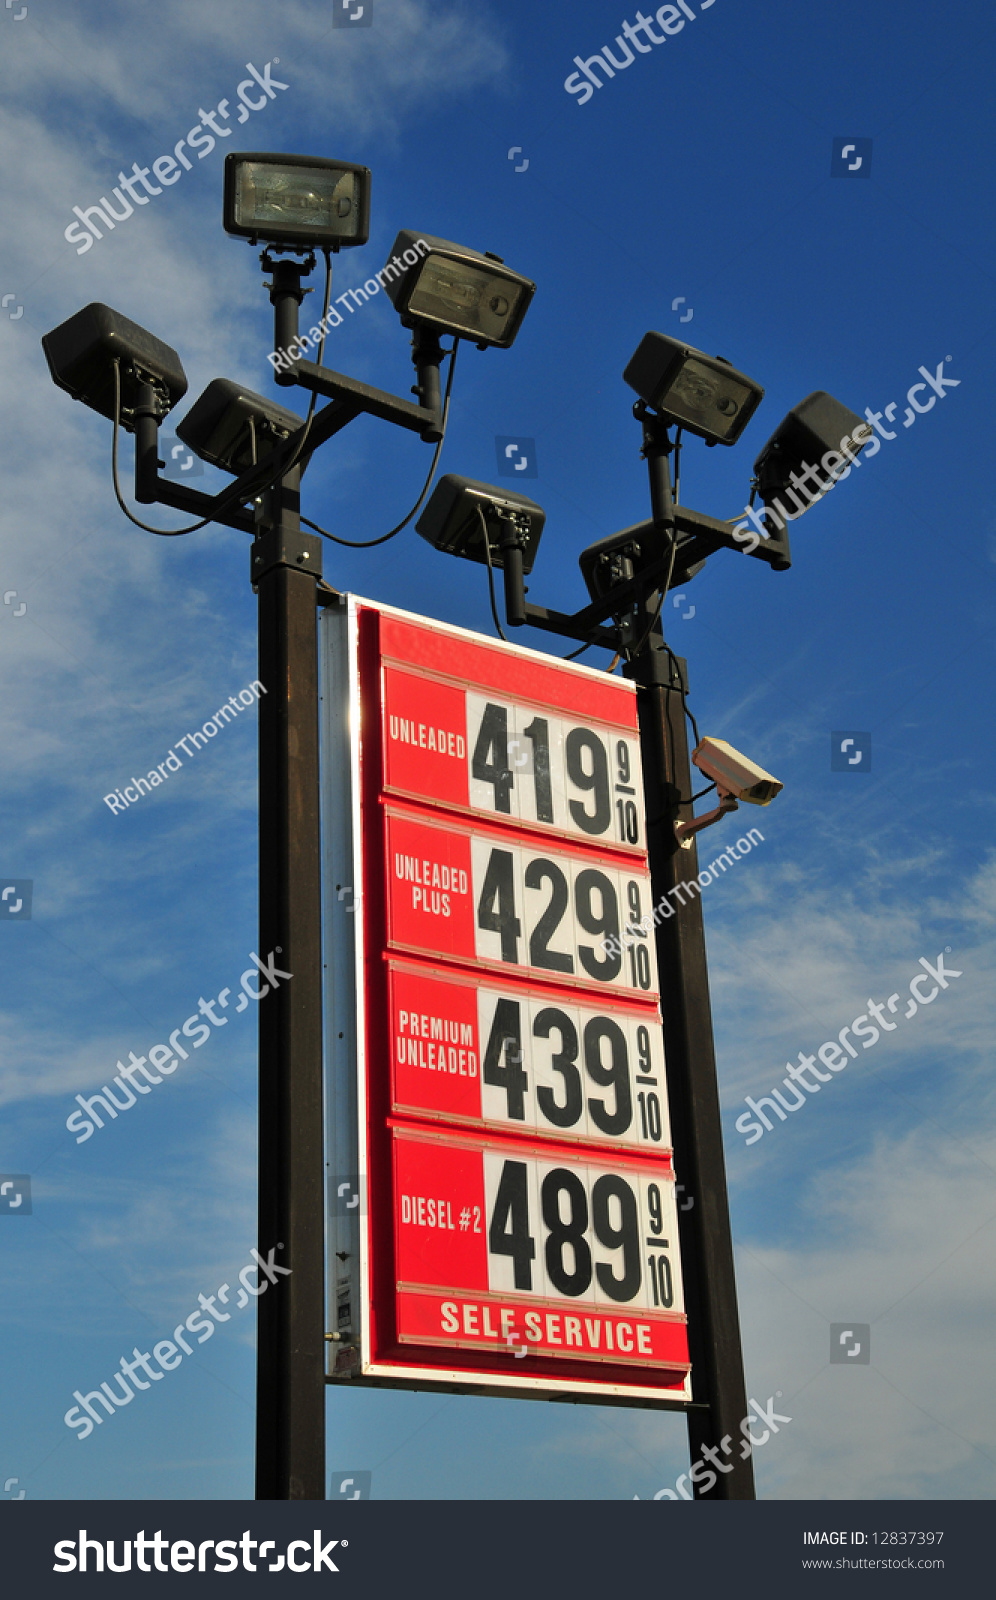 Thorntons Gas Prices >> Rising Fuel Prices Reflected This Service Stock Image